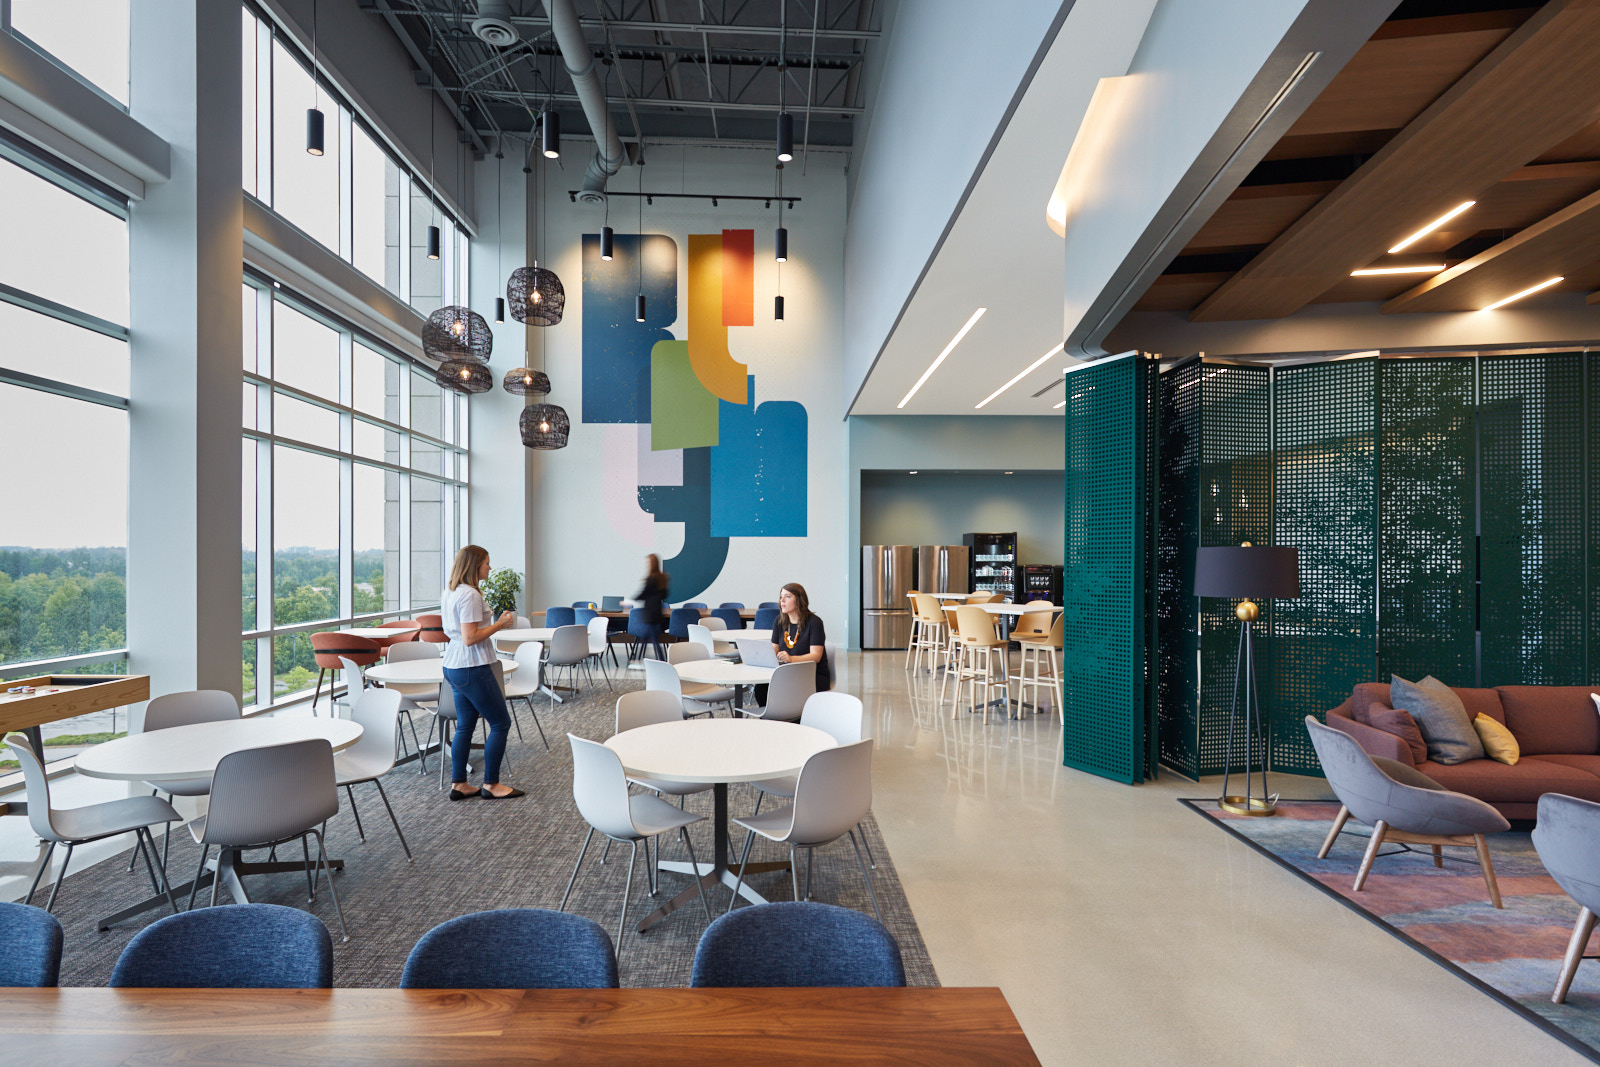 Microsoft, Research Triangle Park NC - Little, Durham NC